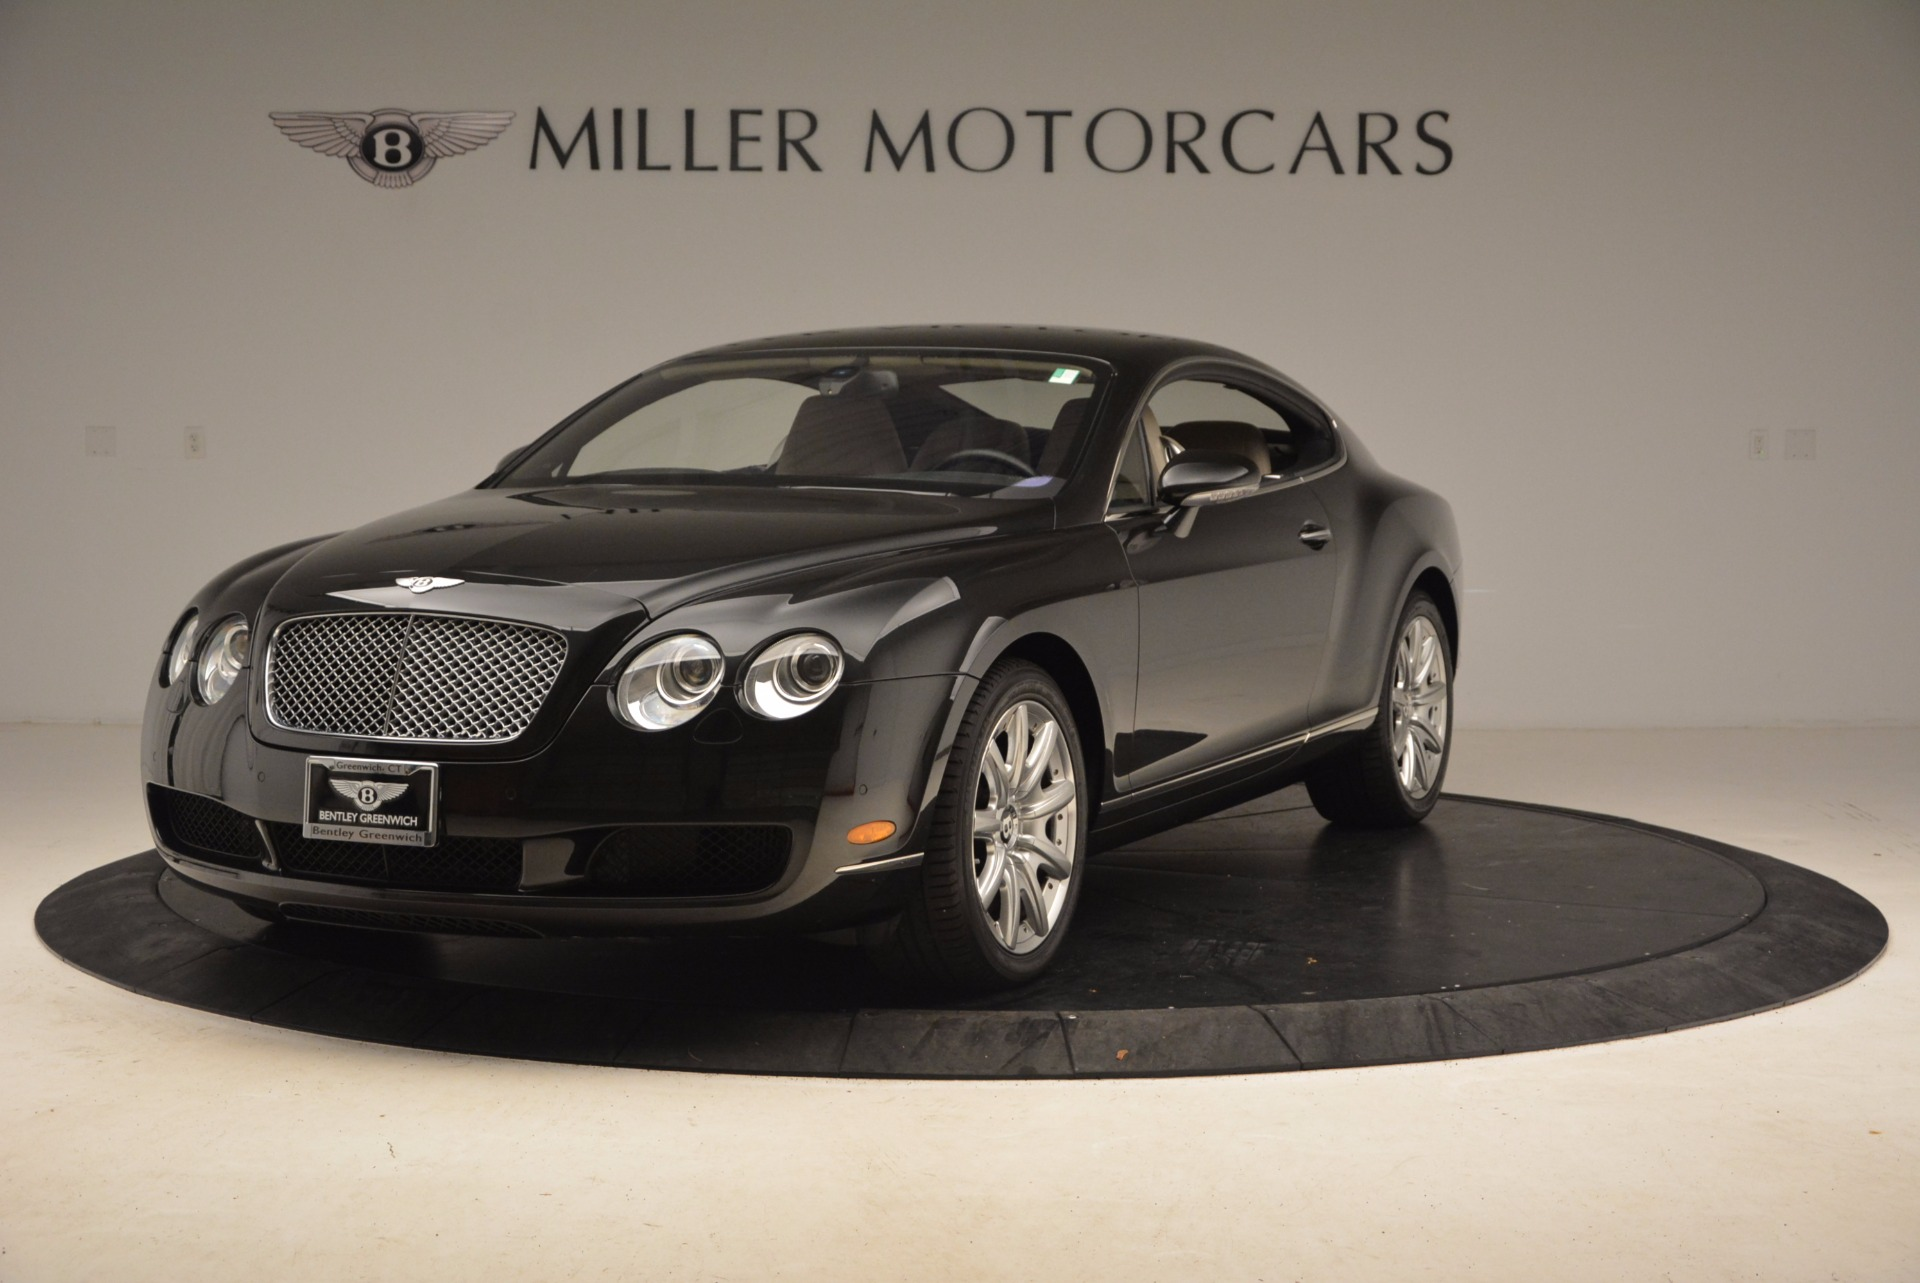 Used 2005 Bentley Continental GT W12 for sale Sold at Alfa Romeo of Westport in Westport CT 06880 1